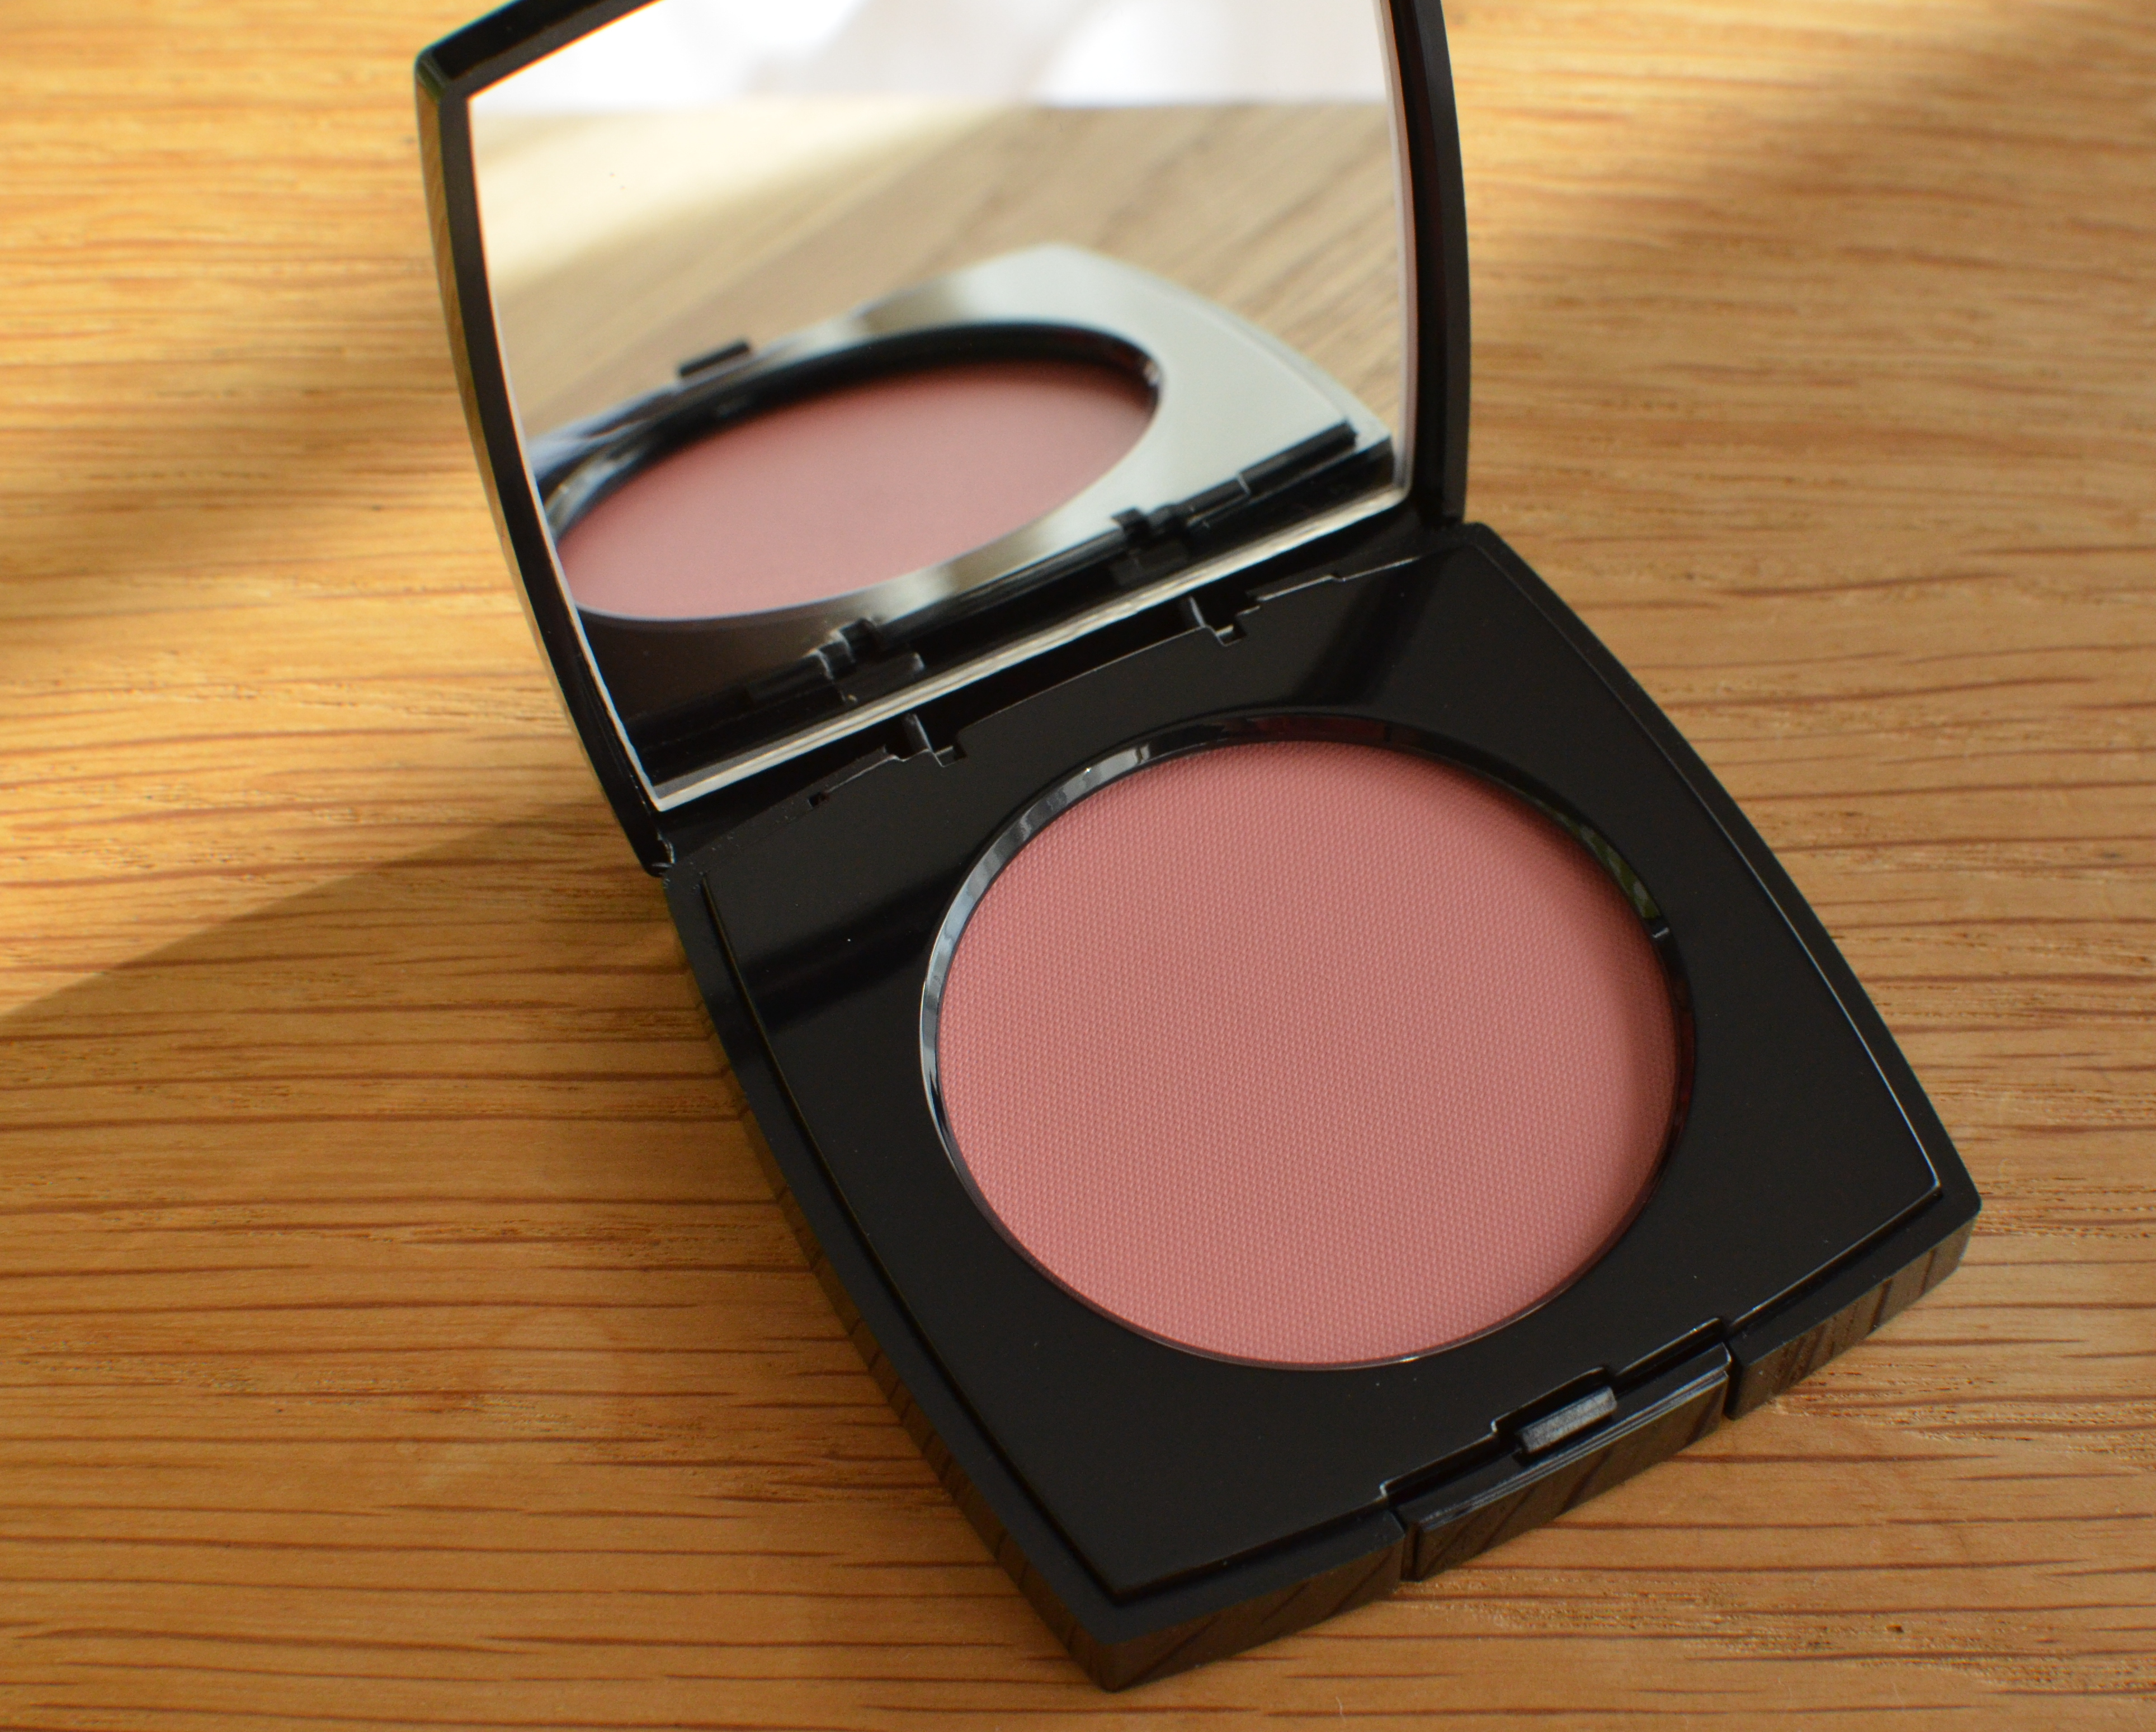 Chanel AW13: Le Blush Creme de Chanel In Inspiration, Ombre ...